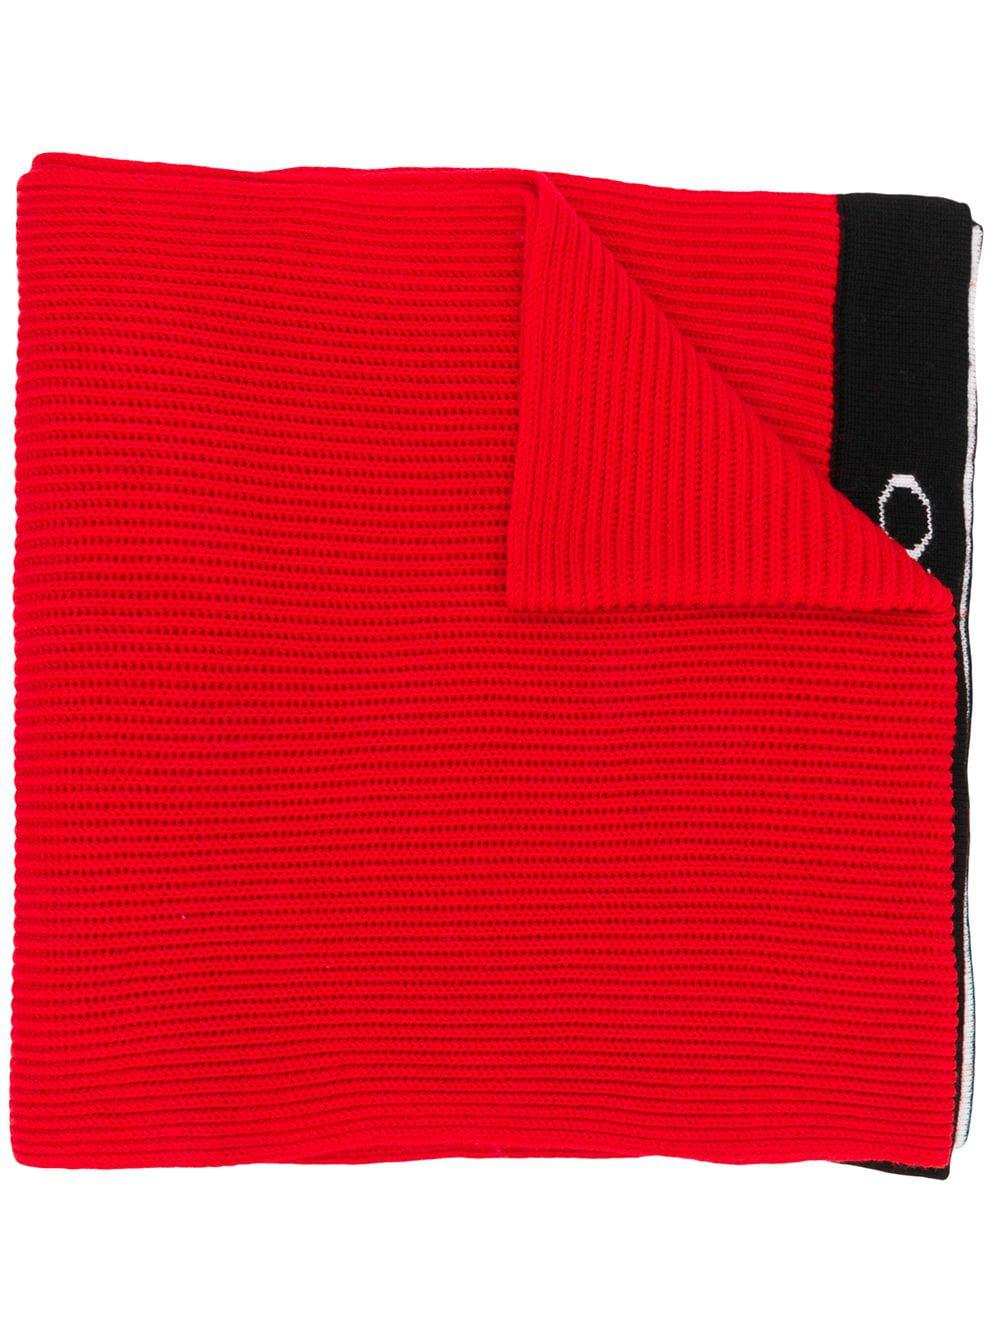 Emilio Pucci Branded Classic Scarf In Red